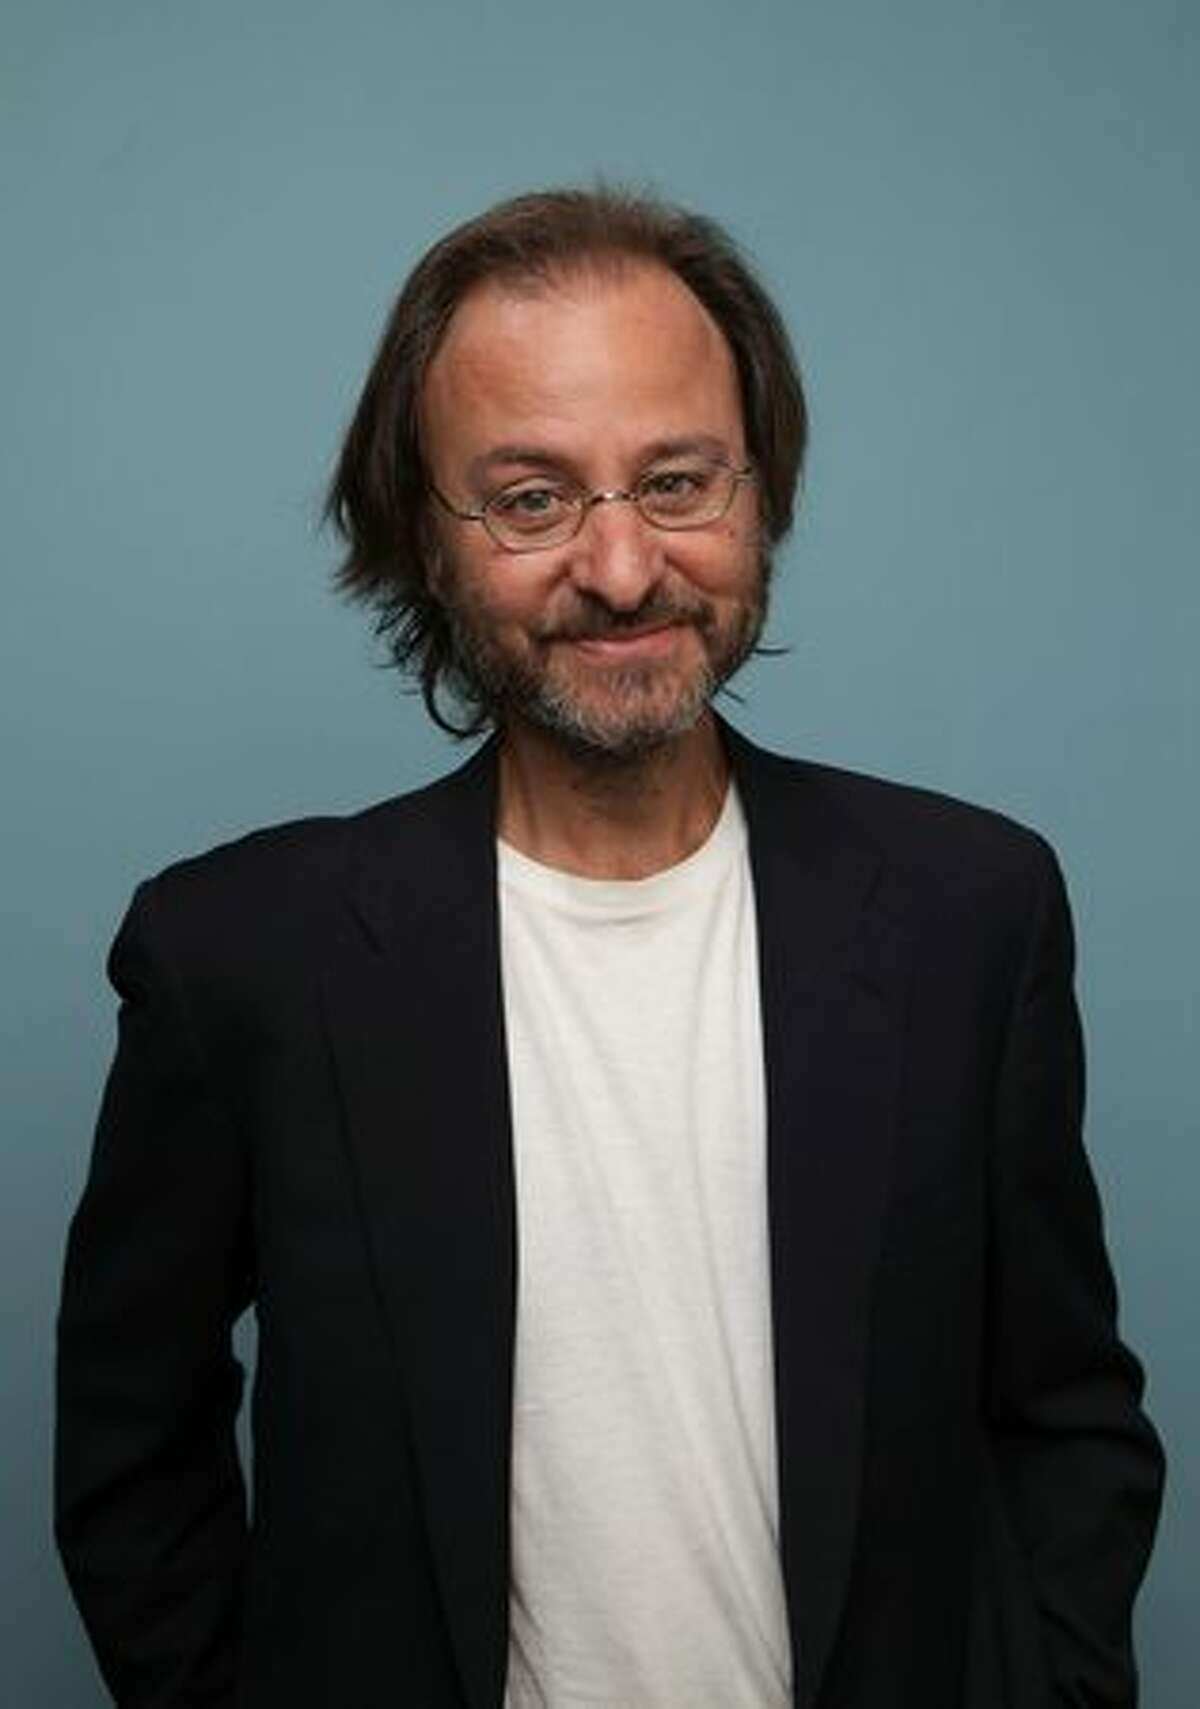 Actor Fisher Stevens from